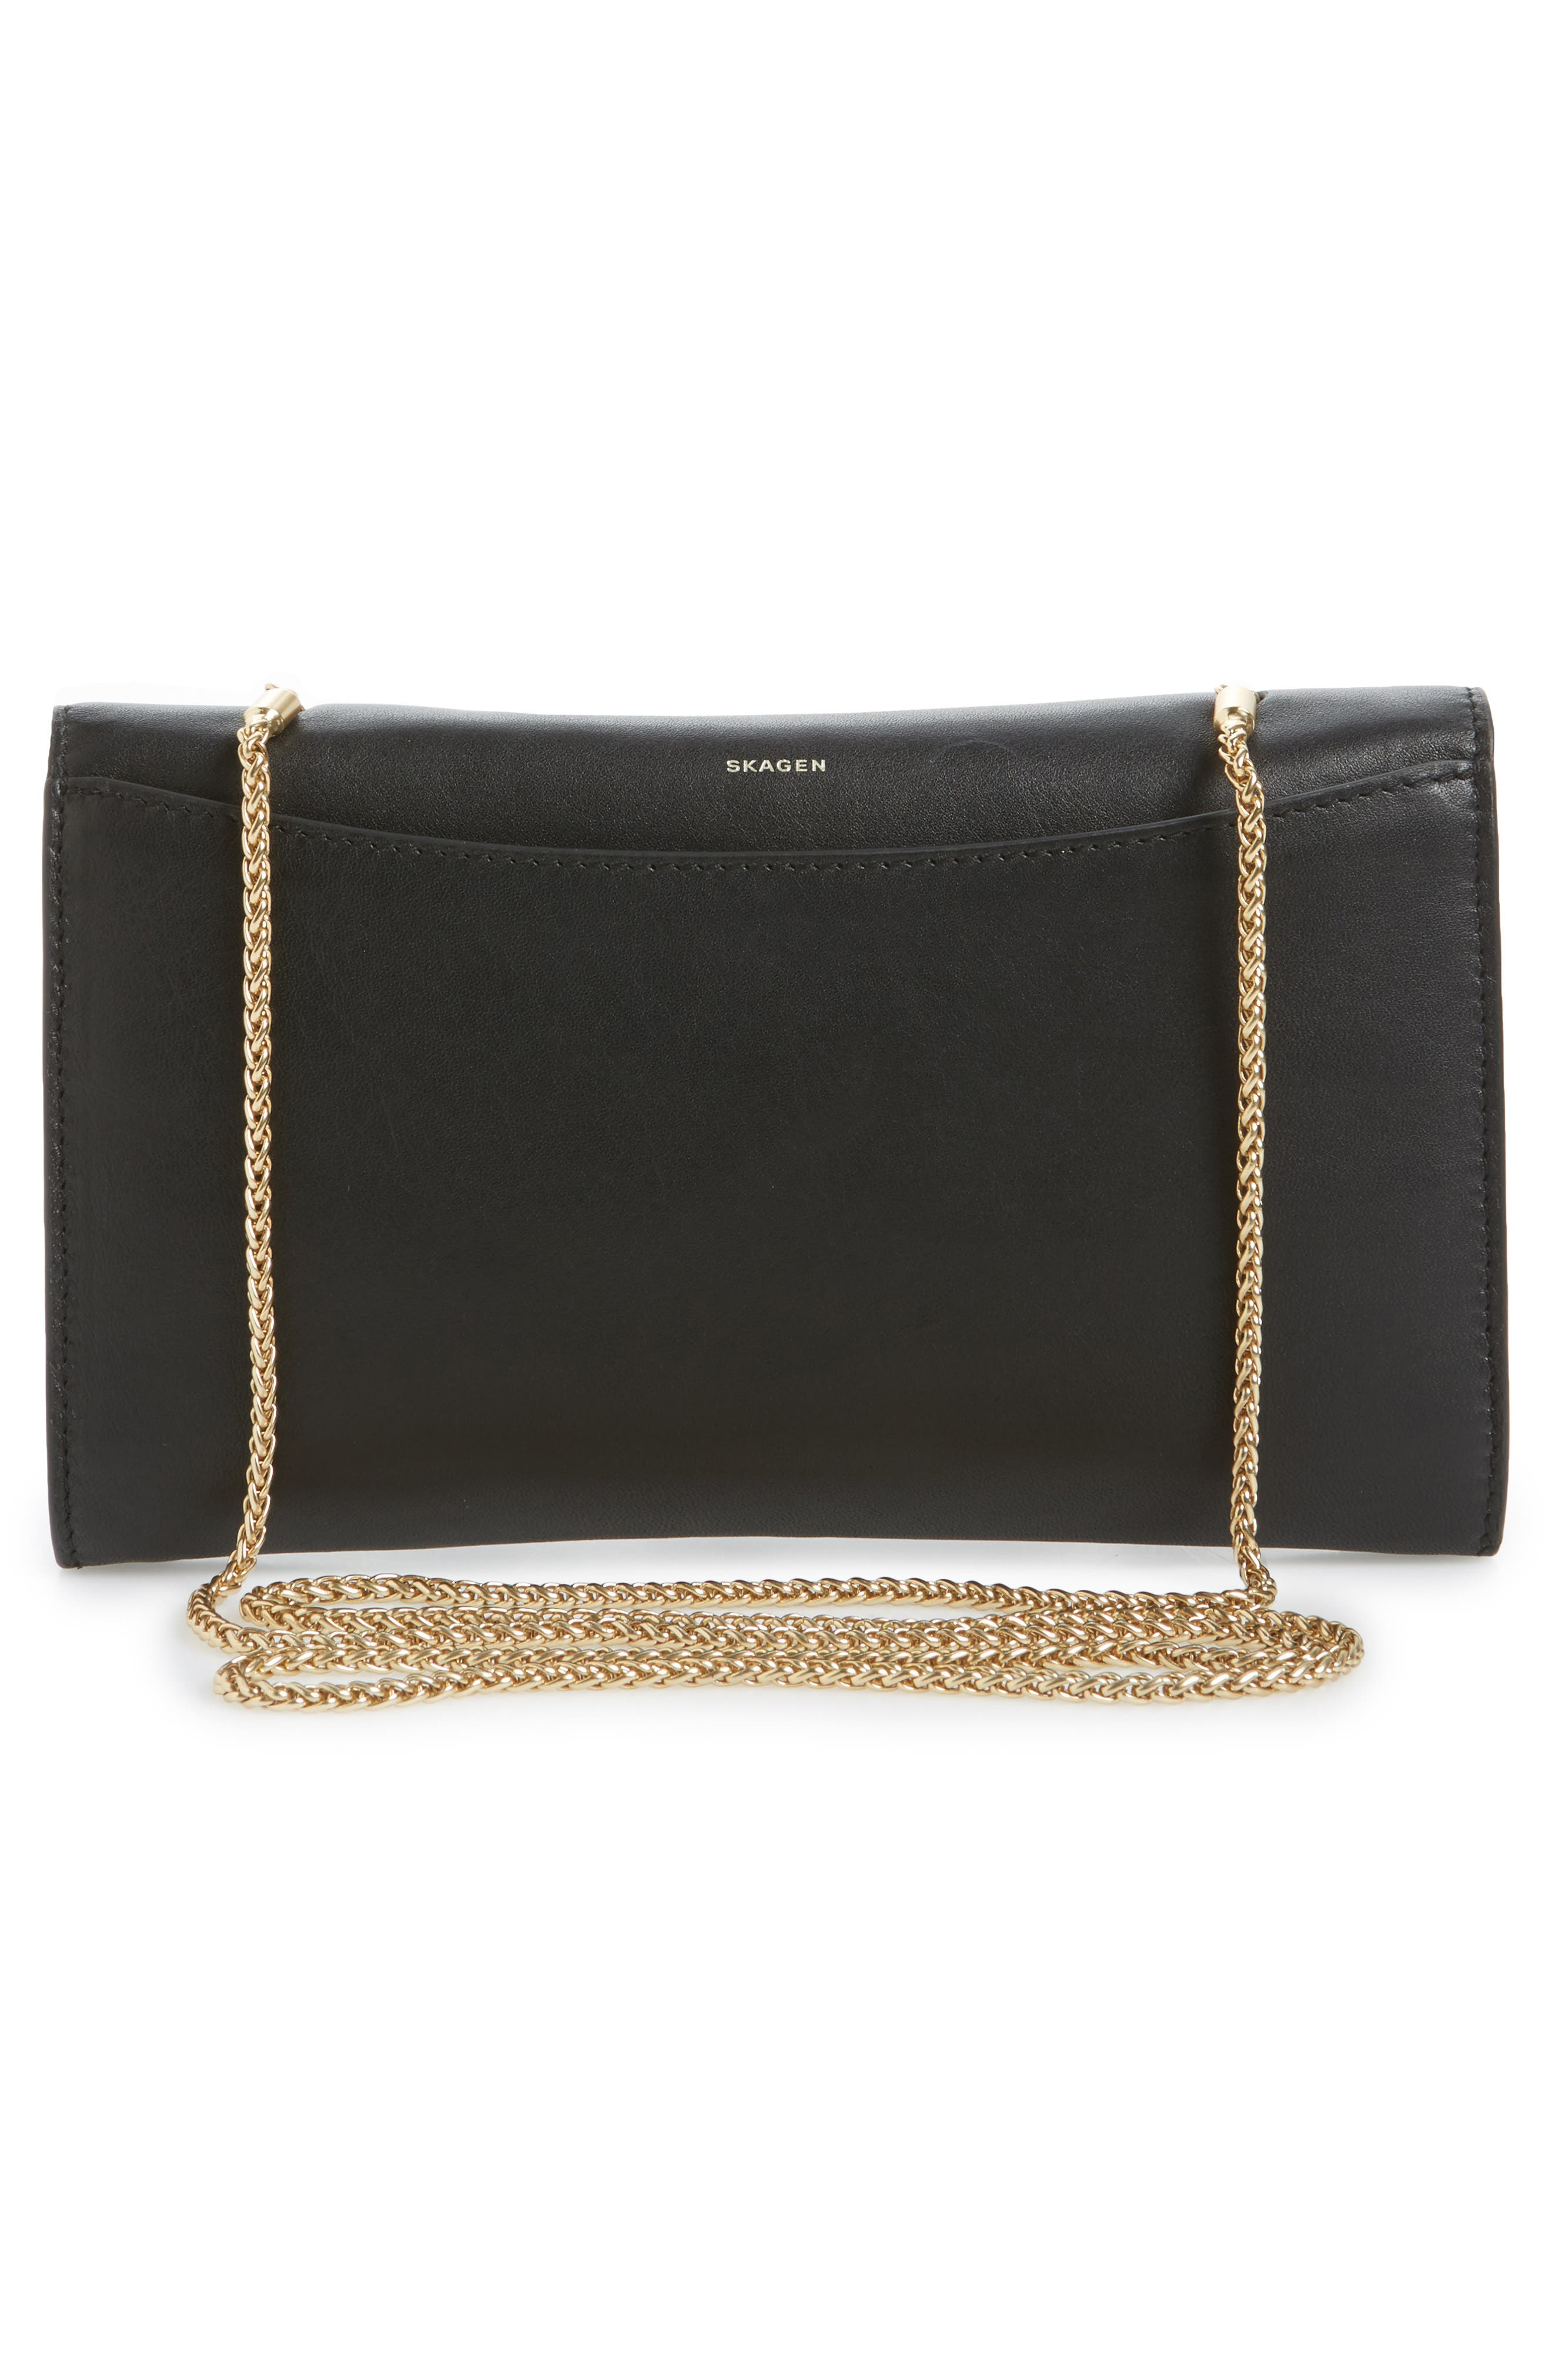 Eryka Leather Envelope Clutch with Detachable Chain,                             Alternate thumbnail 3, color,